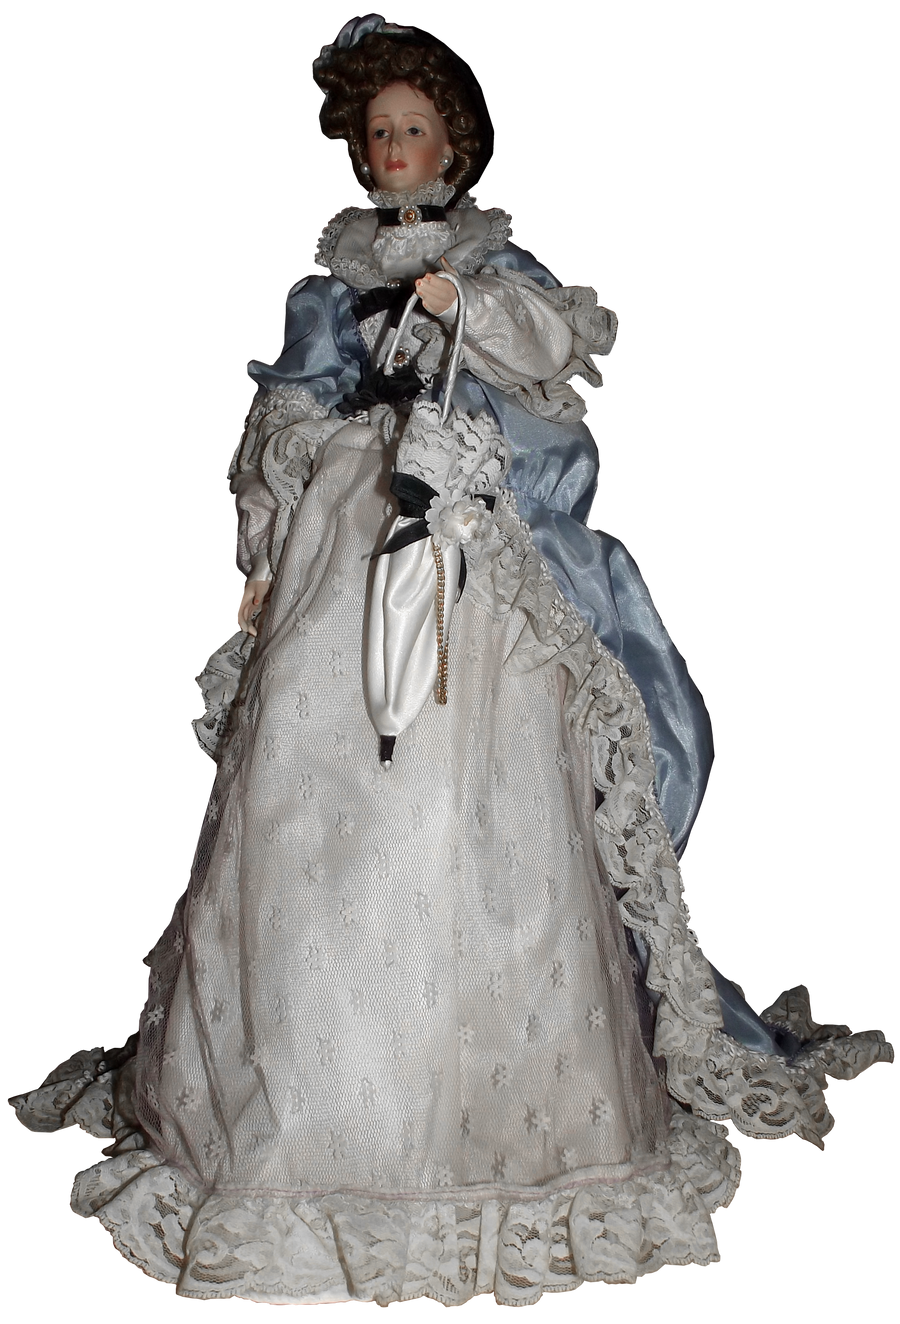 Antique Doll 001 - Clear Cut [UPDATE] by Travail-de-lame